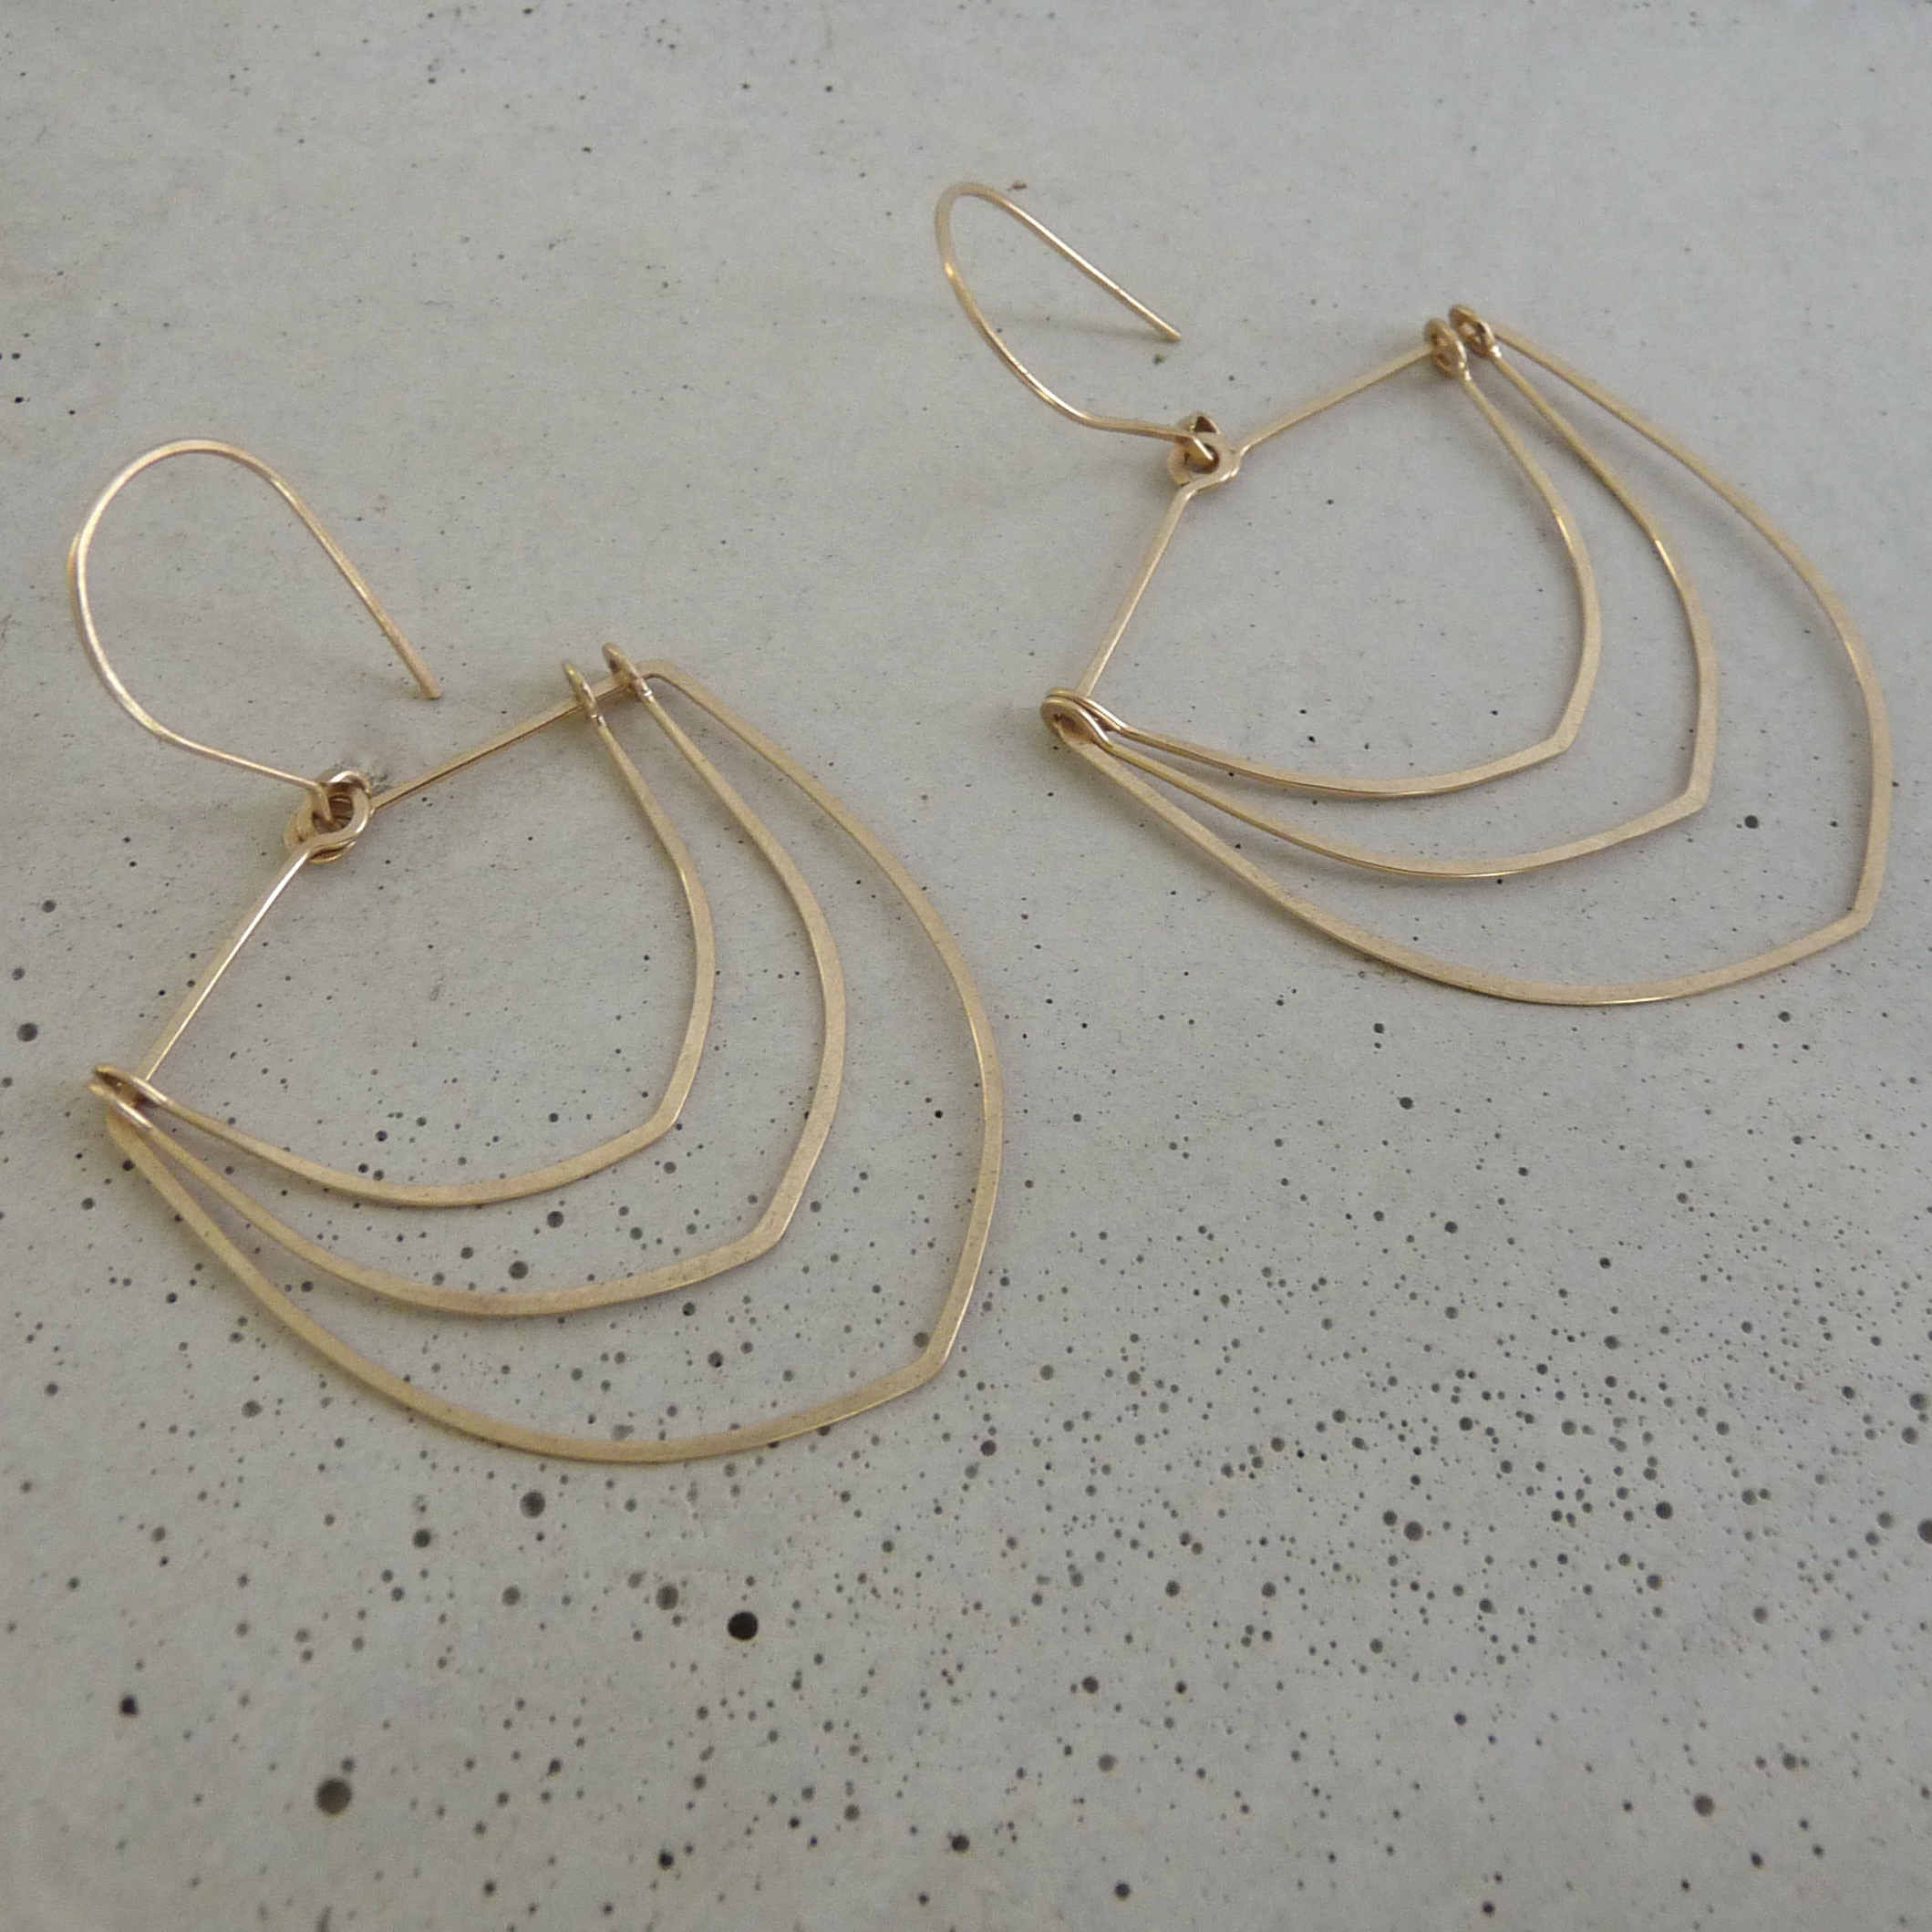 new refined basics, gold feather earrings, gold arch earrings, minimal bridal jewelry, 14k gold earrings, wedding